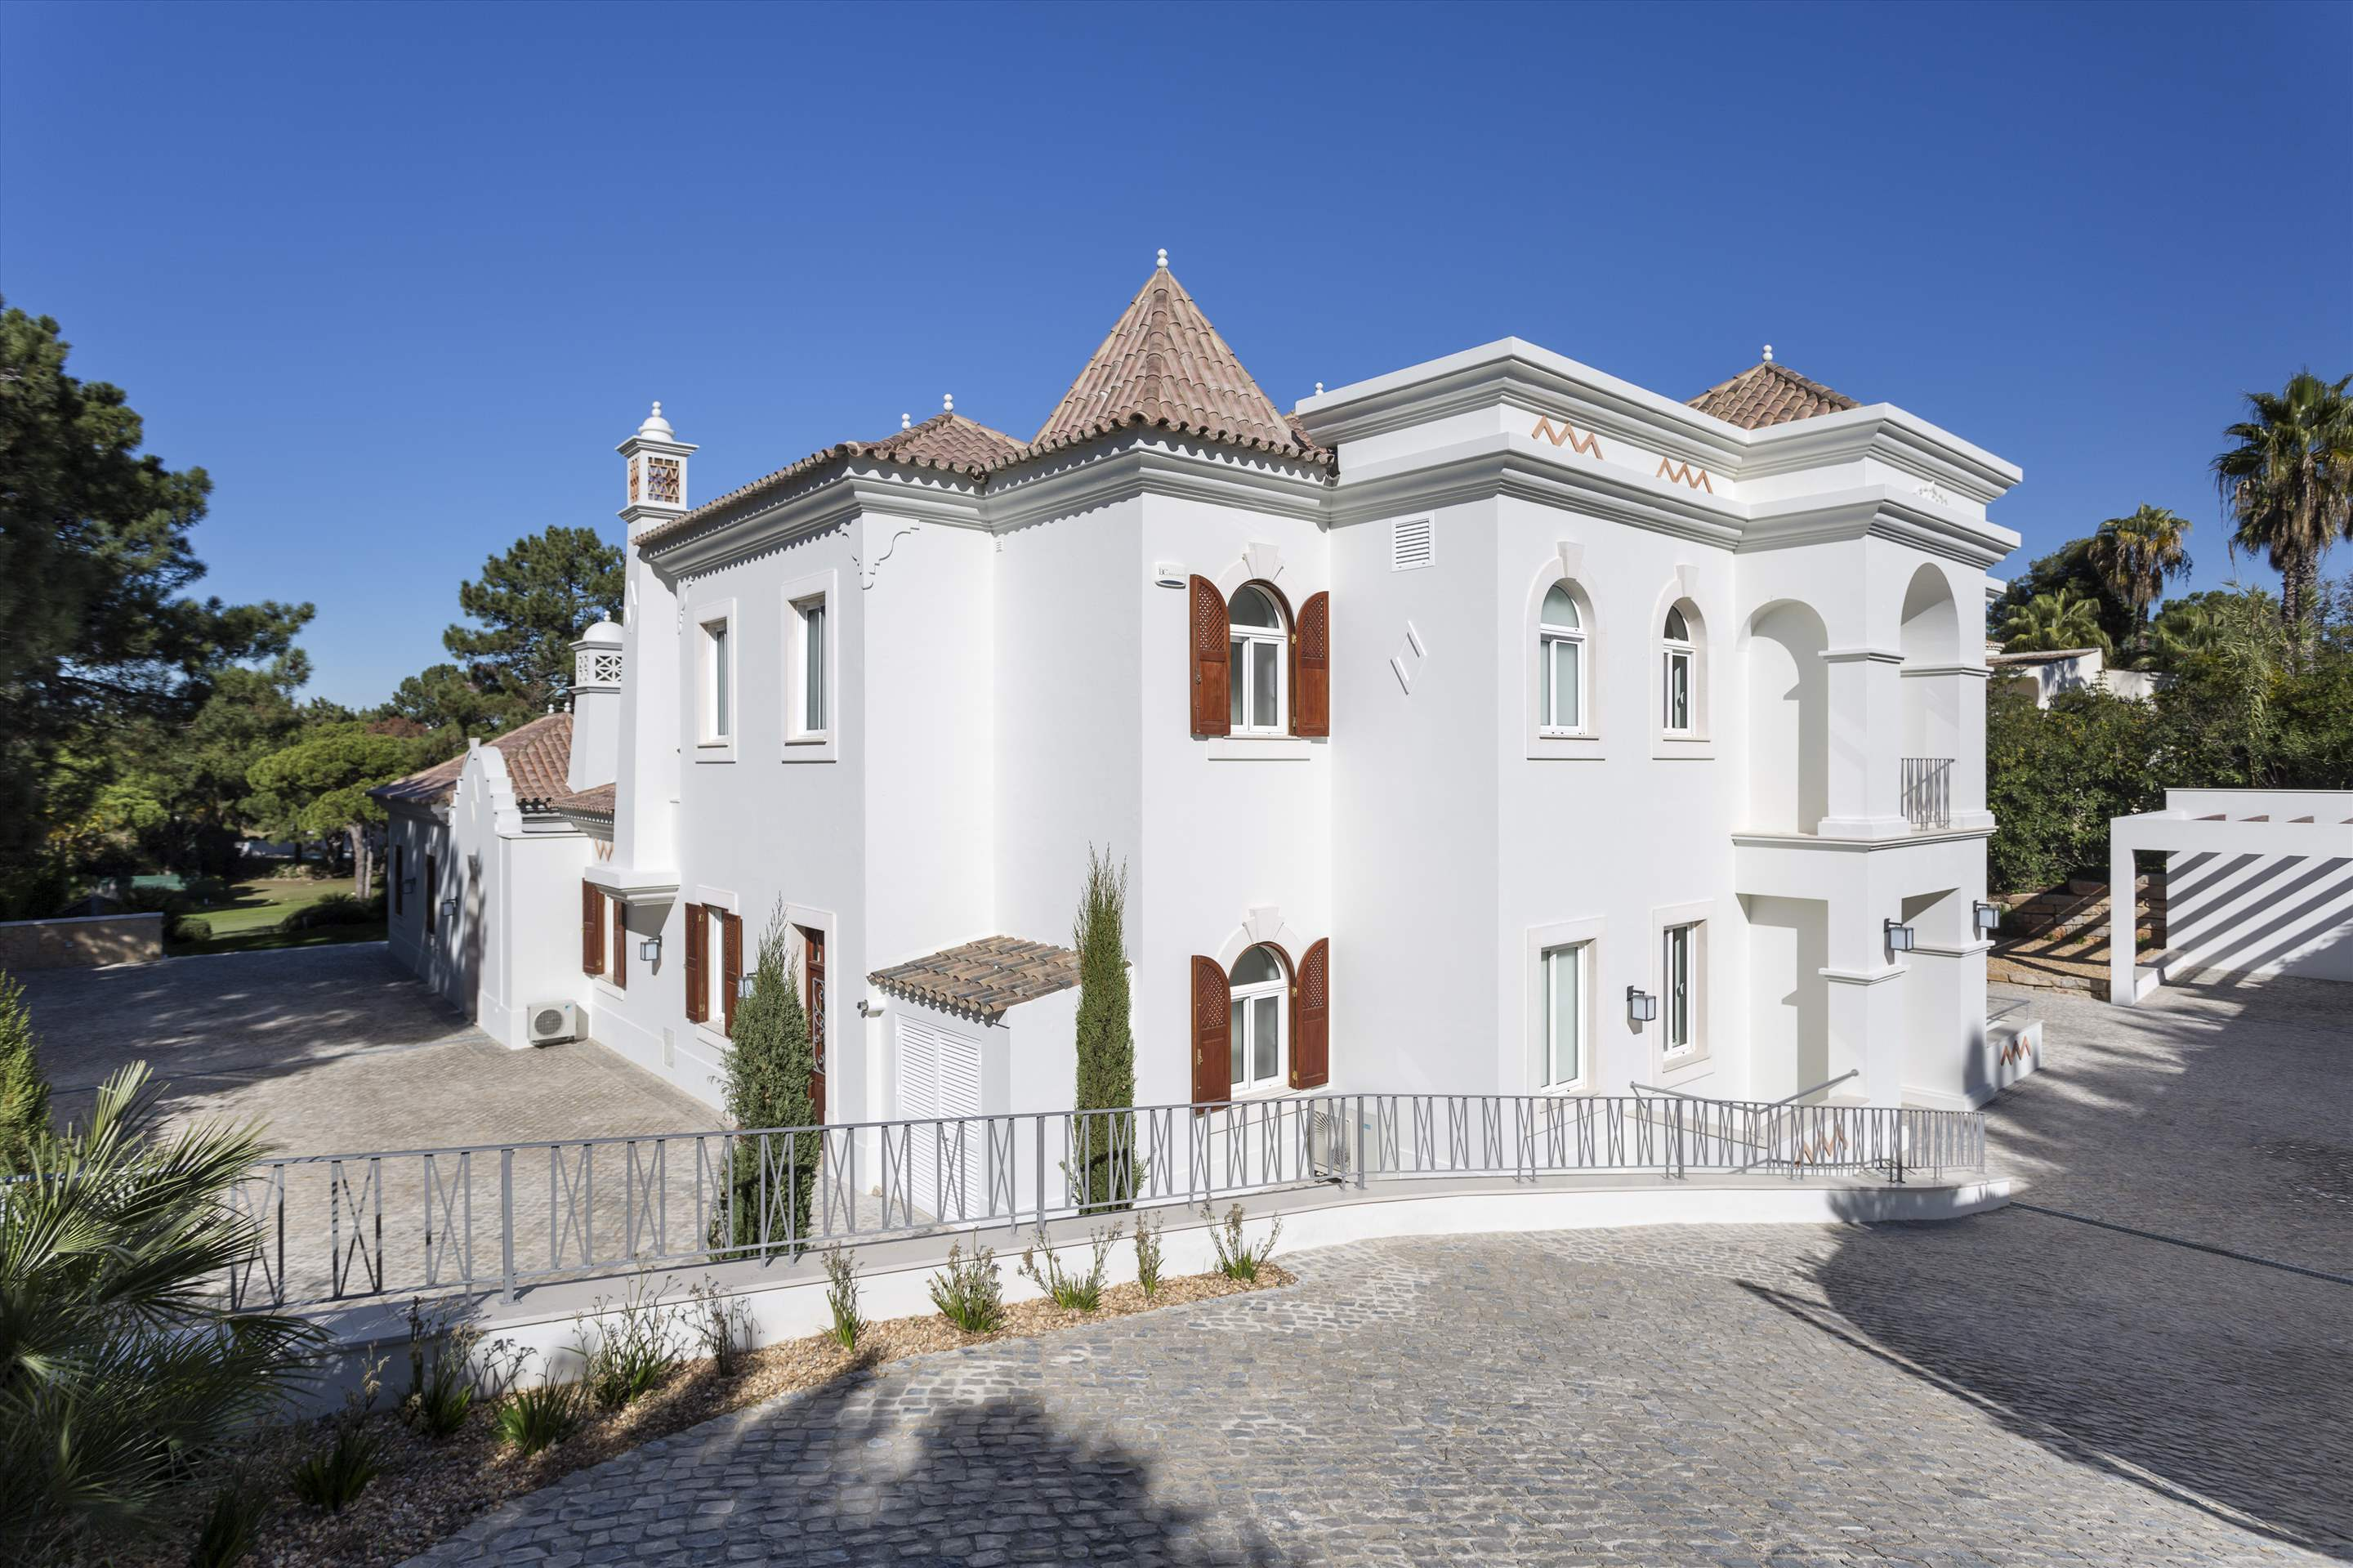 Villa Lantana 2, Main house & Annexe, 6 bedrooms, 6 bedroom villa in Quinta do Lago, Algarve Photo #17